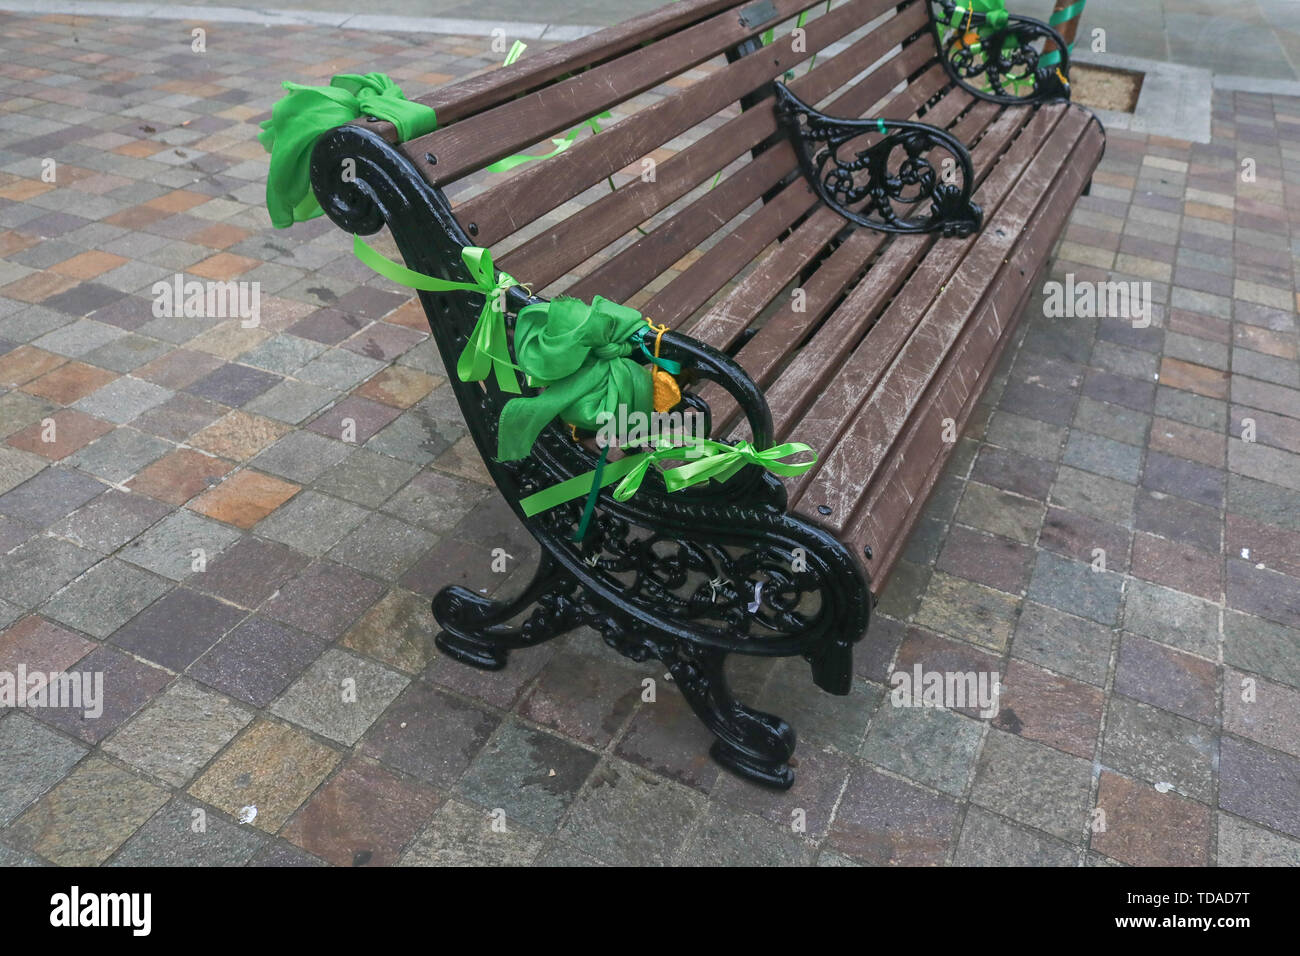 London, UK. 13th June, 2019. A public bench with green ribbons to commemorate the second anniversary of the devastating inferno fire which in the residential tower block in West London on 14 June 2017 Credit: amer ghazzal/Alamy Live News - Stock Image